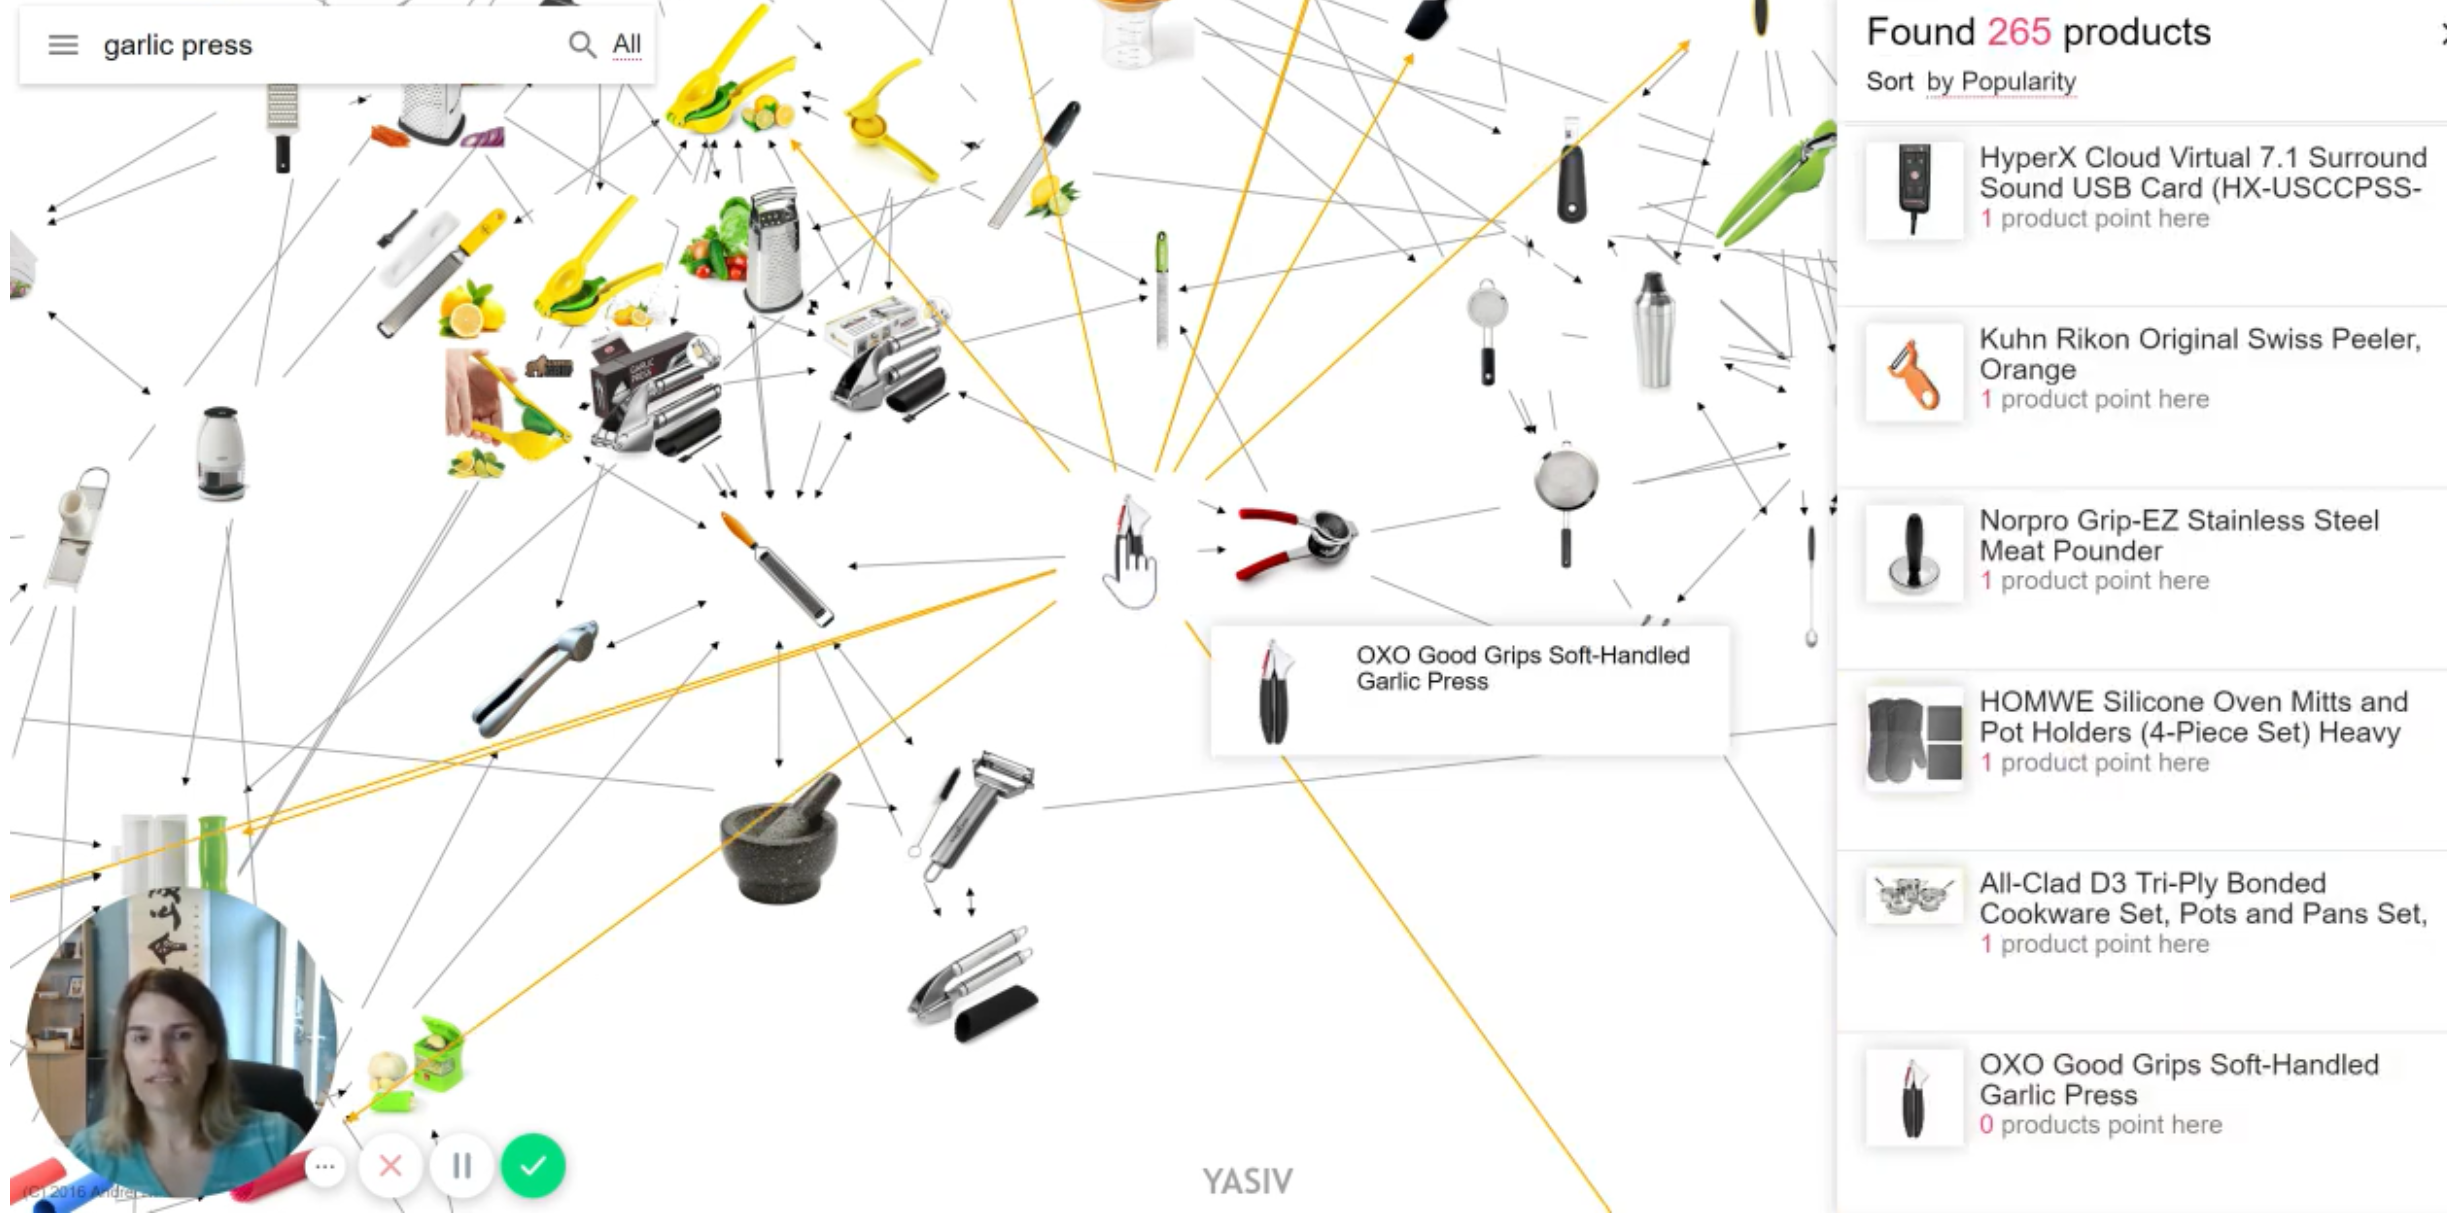 Amazon Products Visualization Tool for Product Research, Market Research, and Bundling